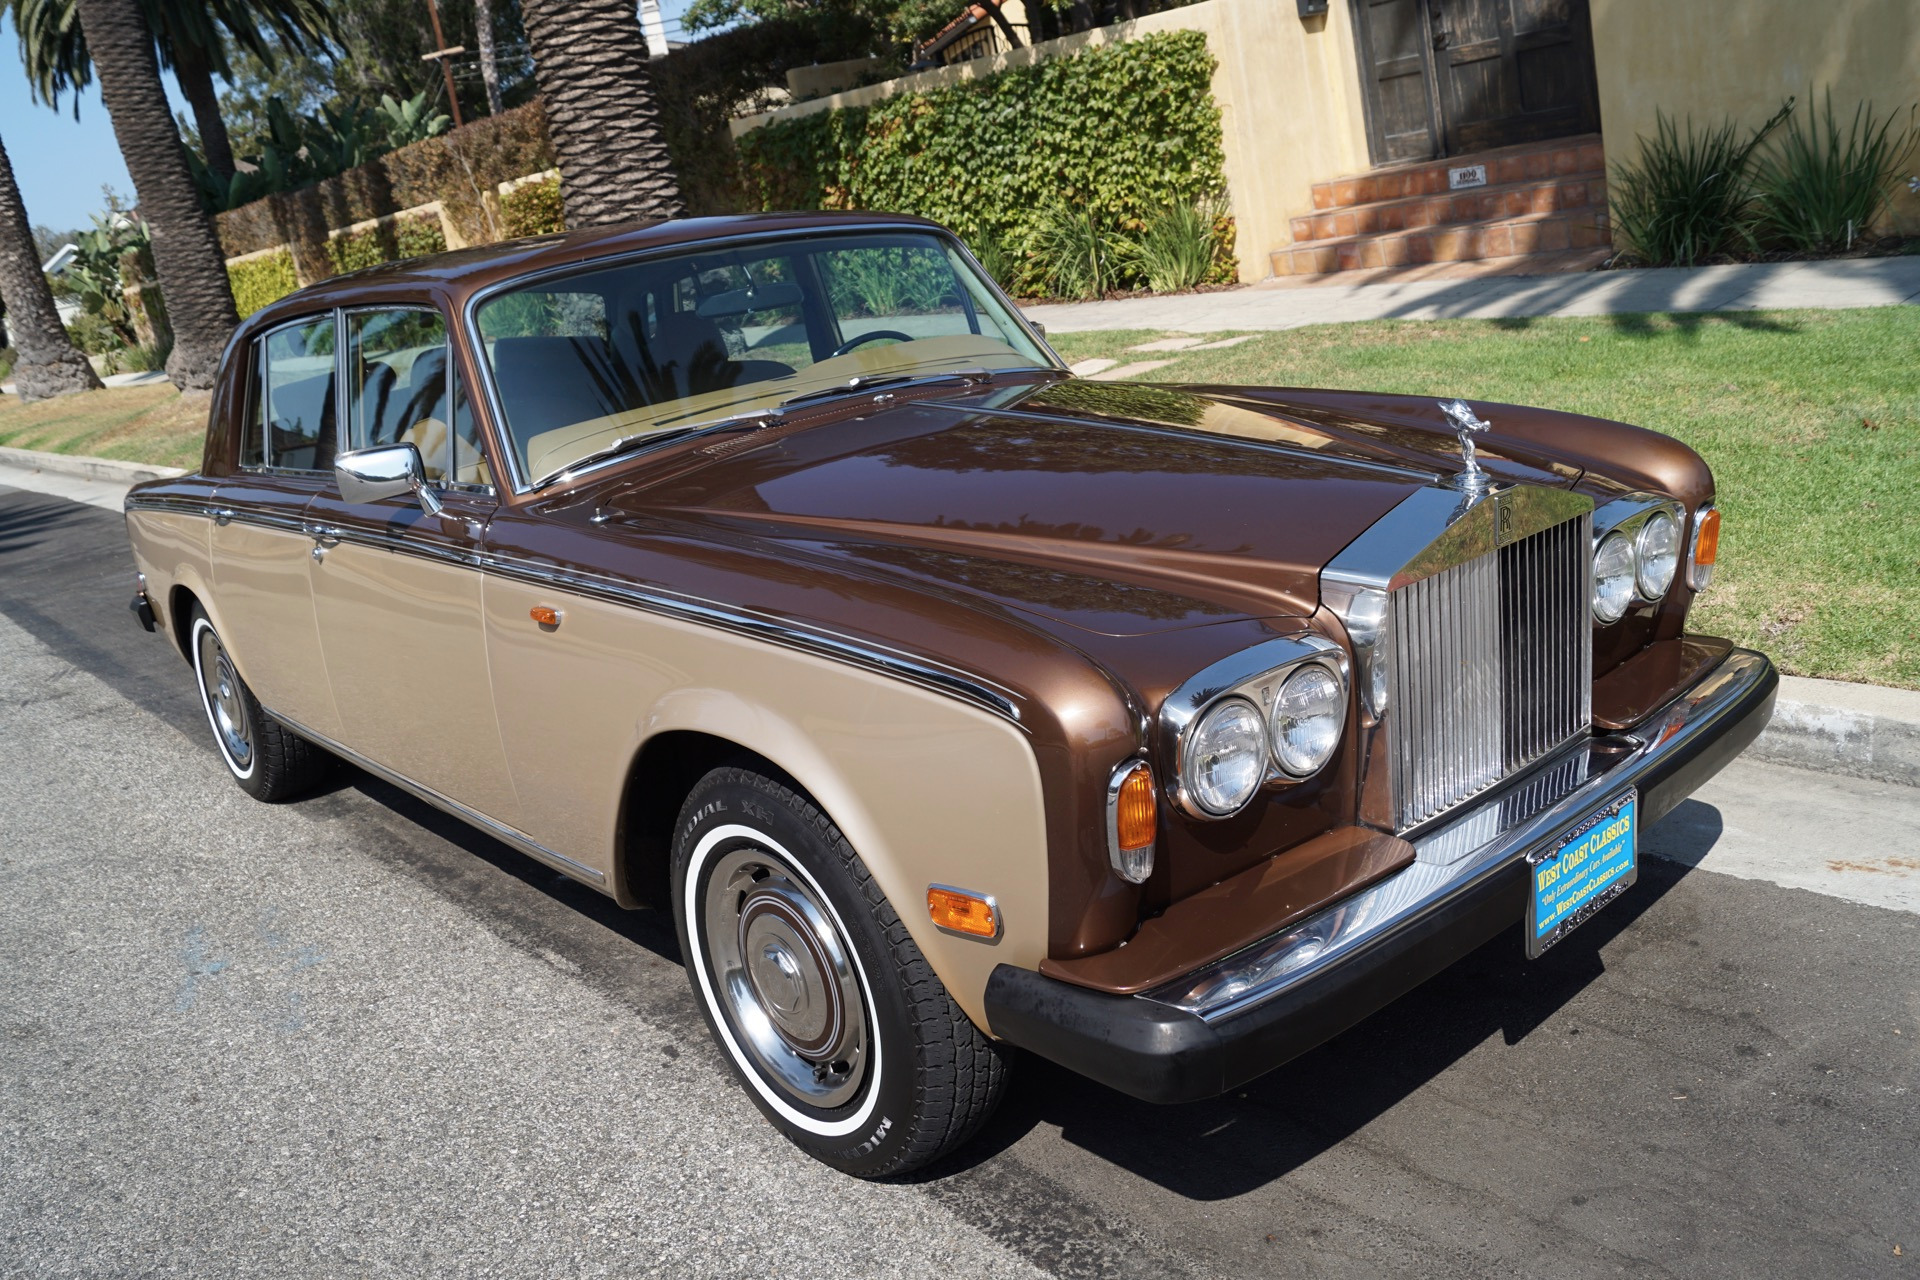 1979 rolls royce silver shadow ii tan leather stock 782. Black Bedroom Furniture Sets. Home Design Ideas